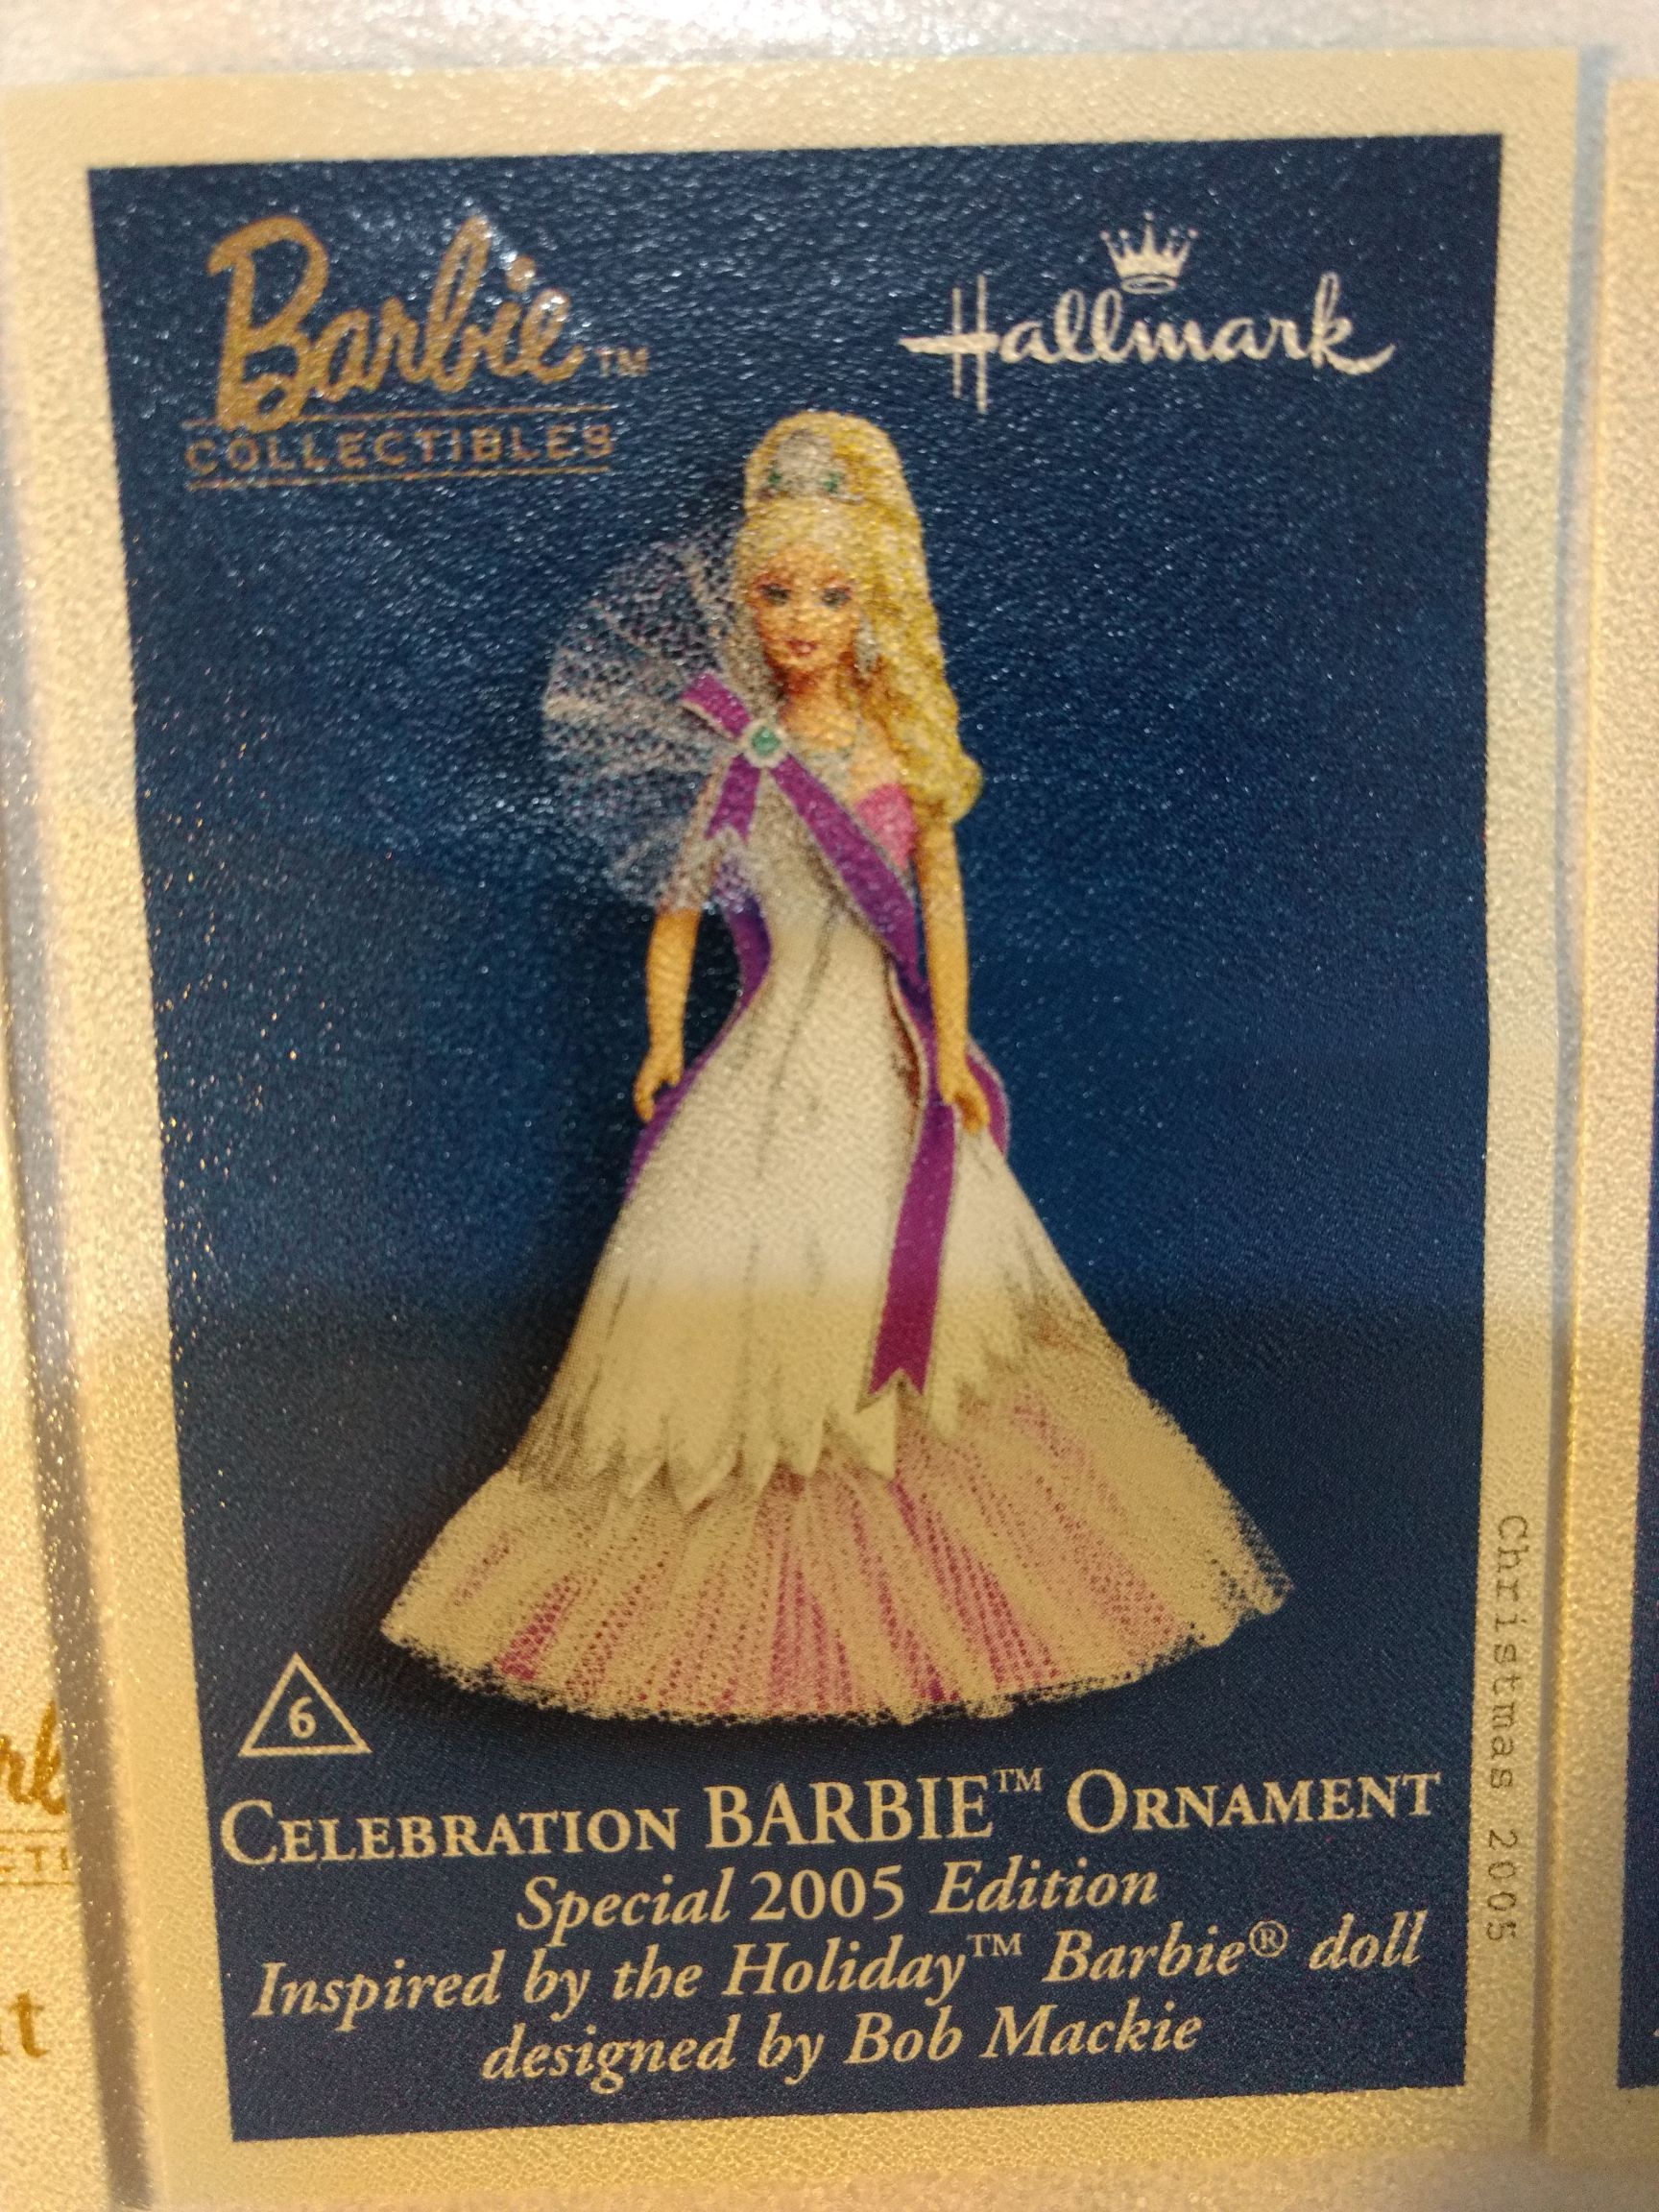 Barbie - Holiday - Celebration Barbie 2005 2005 Ornament - Hallmark (2005) front image (front cover)